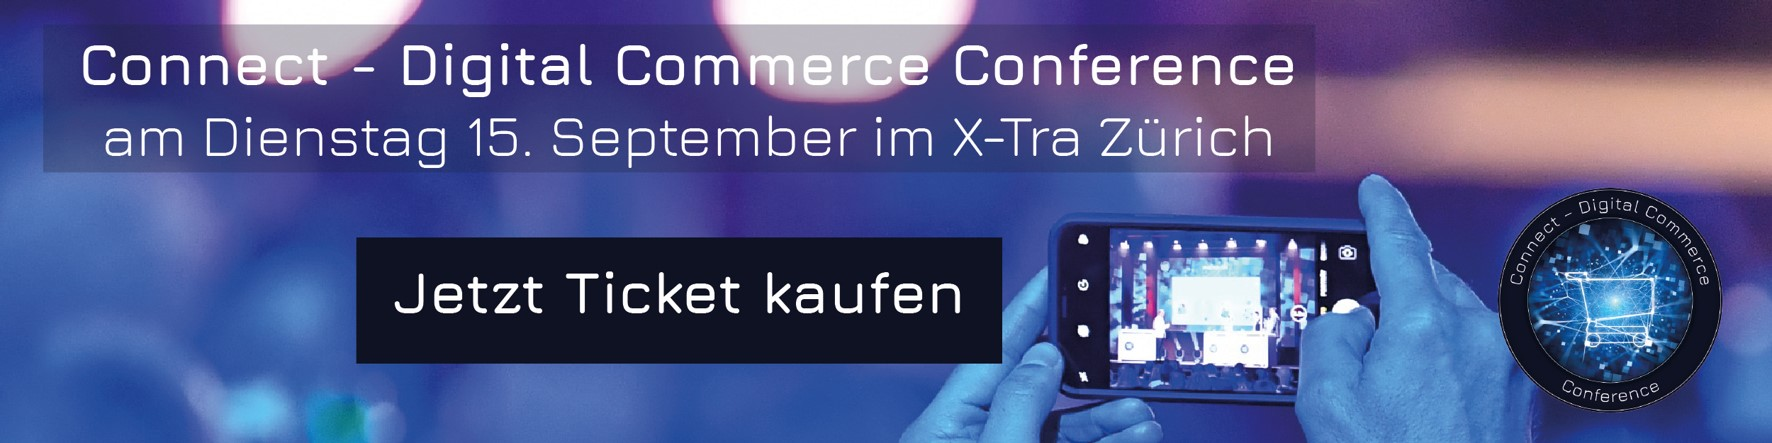 connect-banner-tickets-200915-newsletter